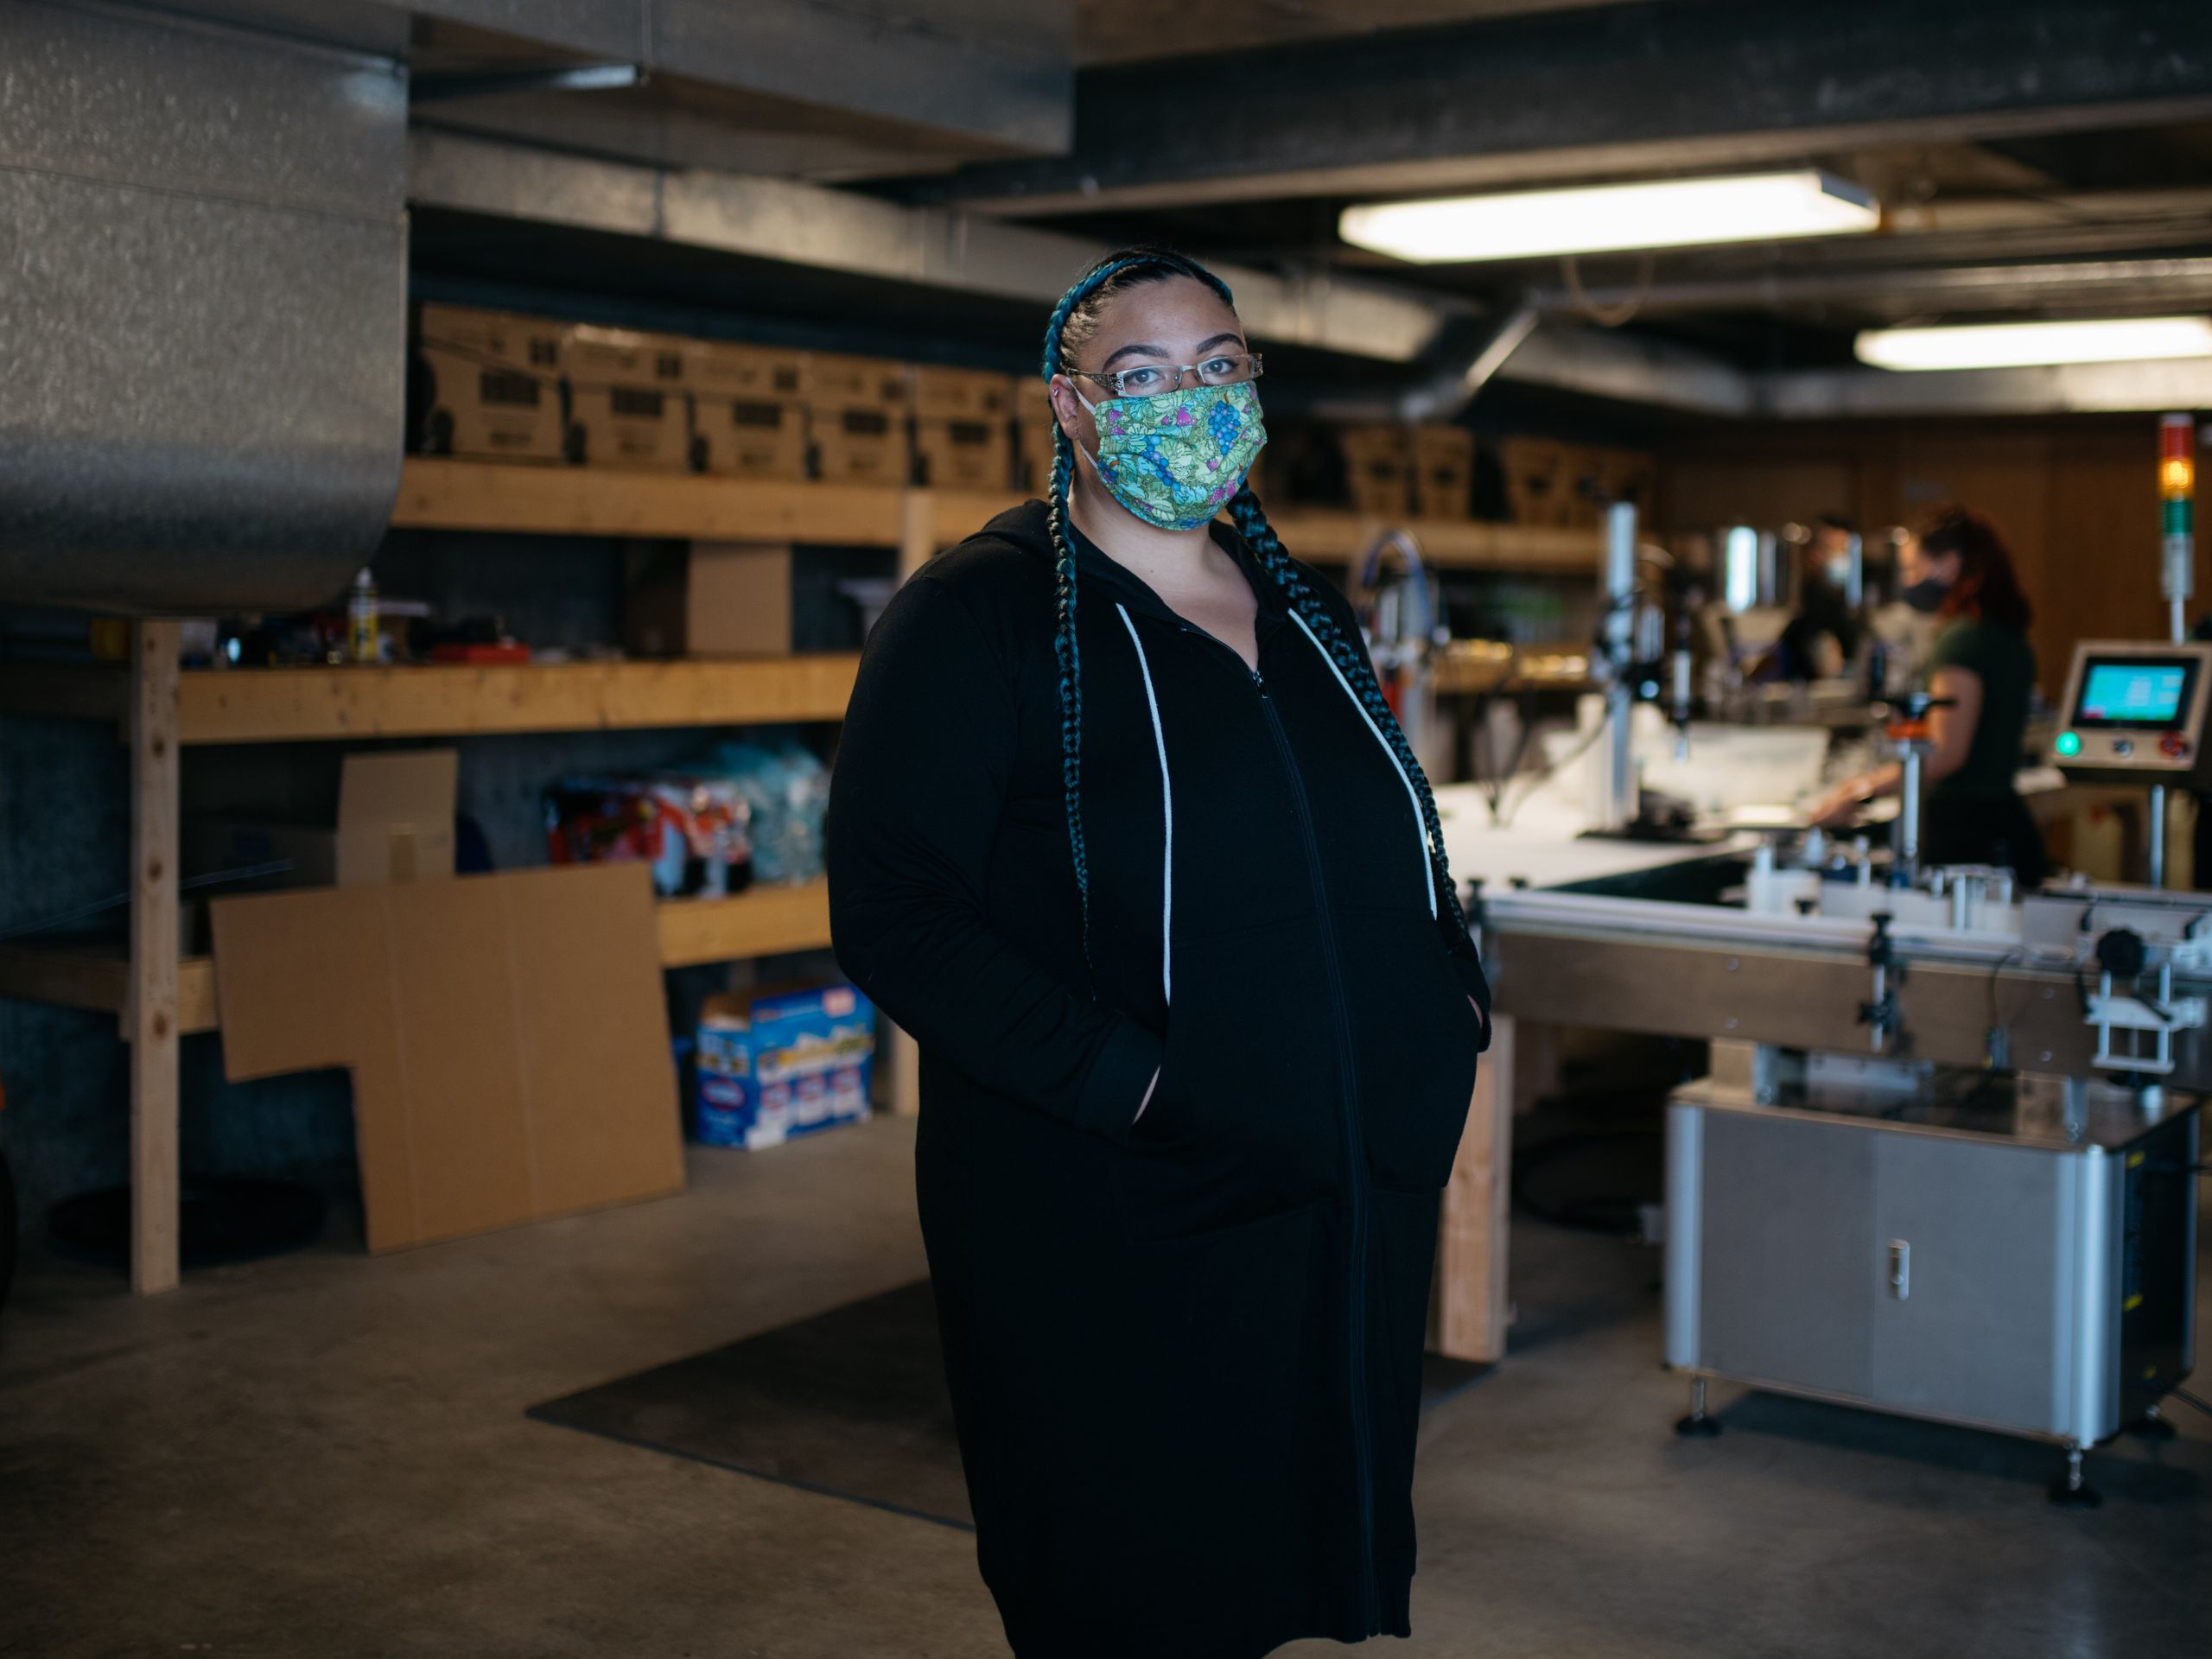 Sherae Lascelles, founder of Seattle's Green Light Project, a nonprofit that gives sanitation products and cash to sex